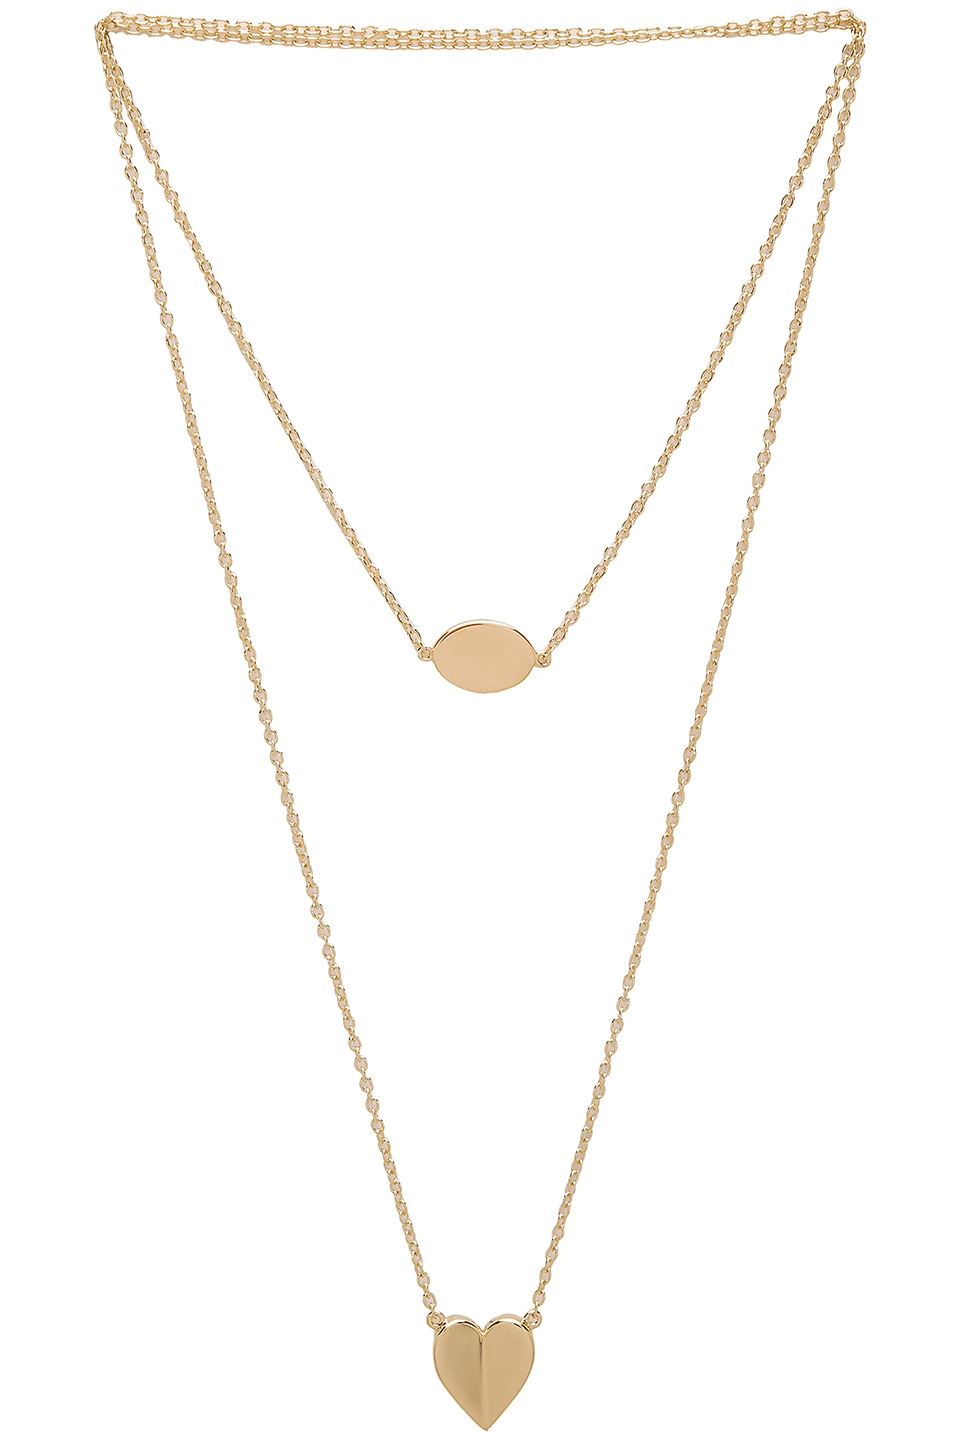 Elizabeth and James Harper Necklace in Gold